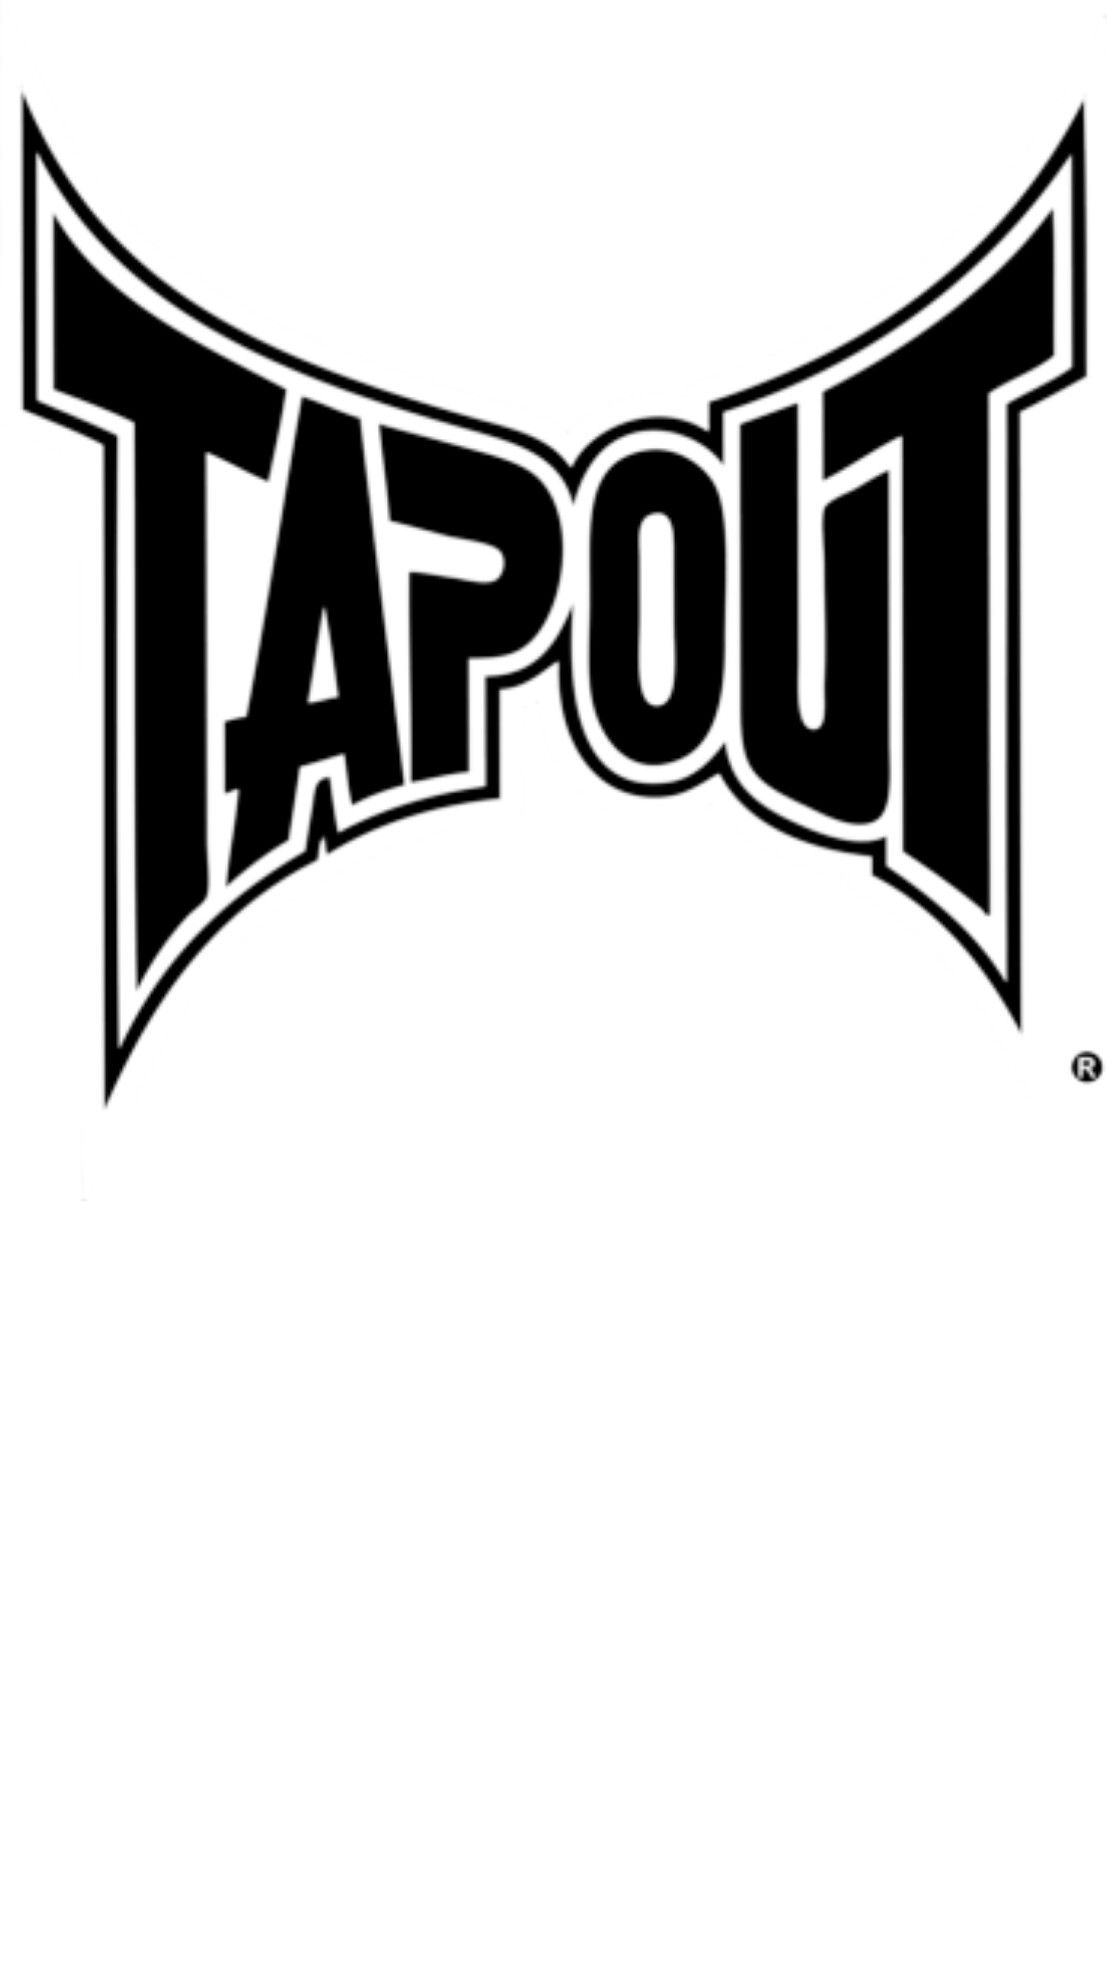 Tapout Mma Usa Black Wallpaper Android Iphone [ 1965 x 1107 Pixel ]